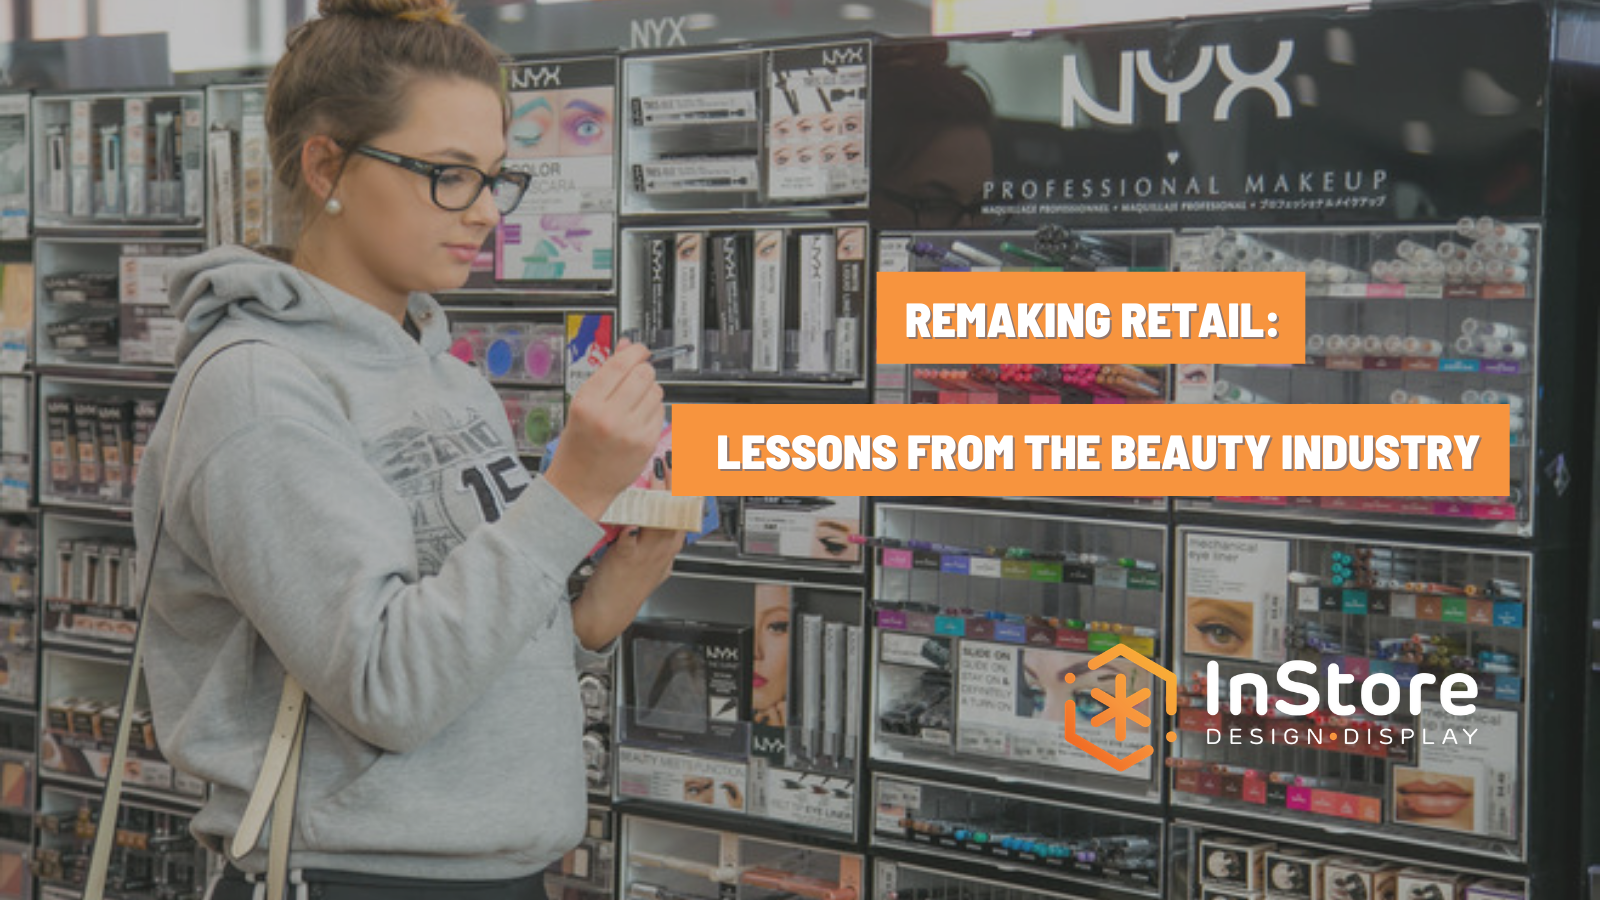 Remaking Retail: Lessons from the Beauty Industry